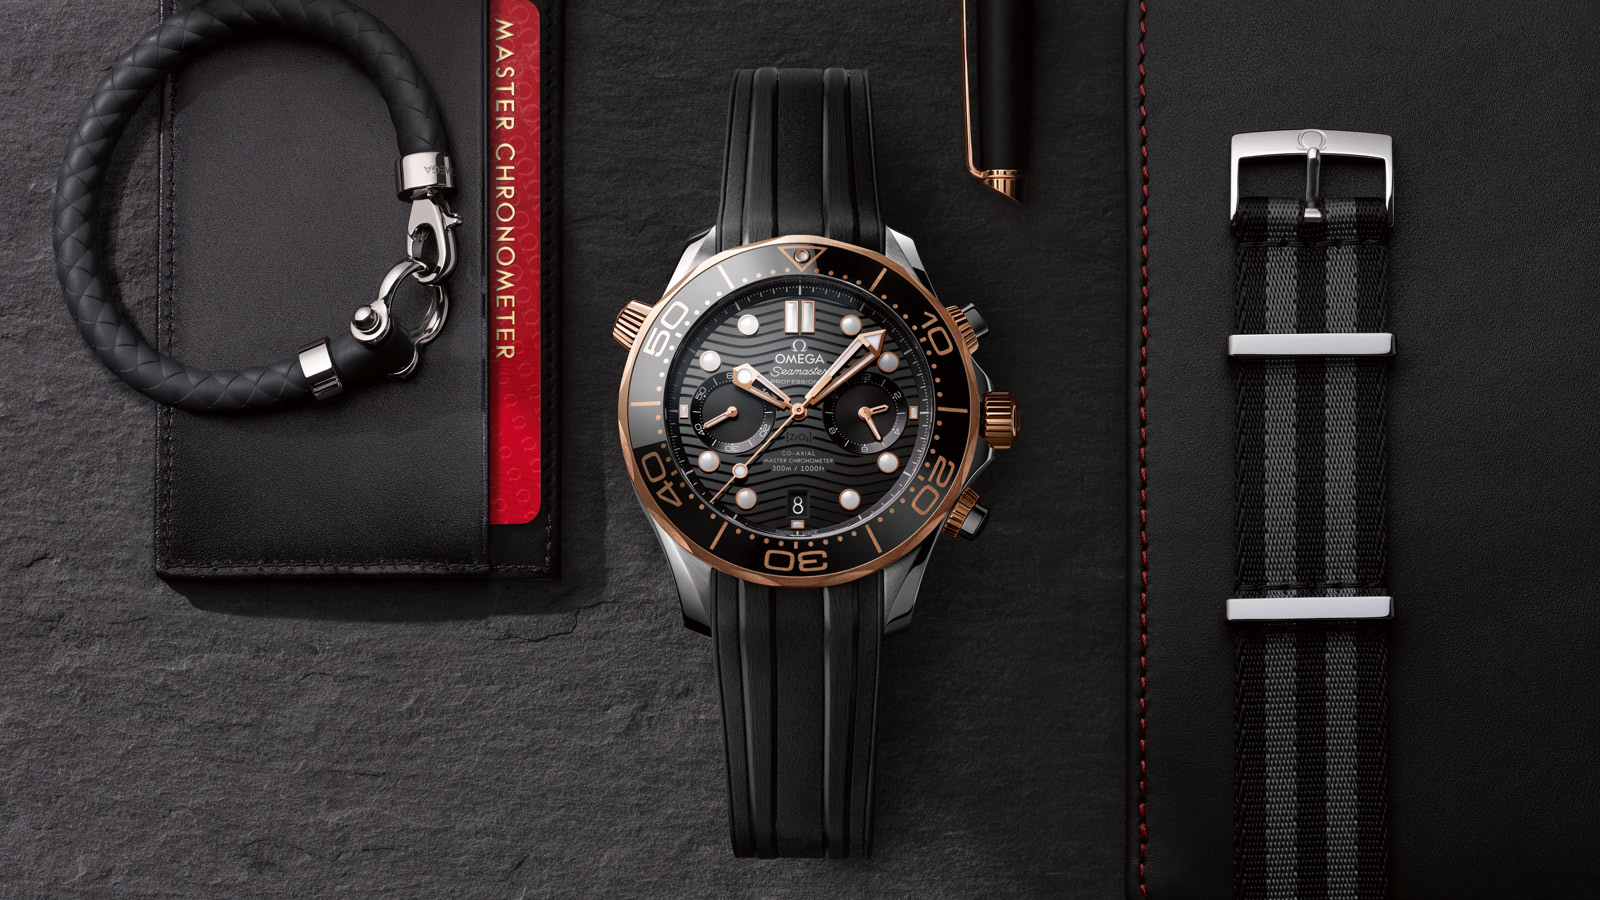 Seamaster Diver 300 M Diver 300M Omega Co‑Axial Master Chronometer Chronograph 44 mm Watch - 210.22.44.51.01.001